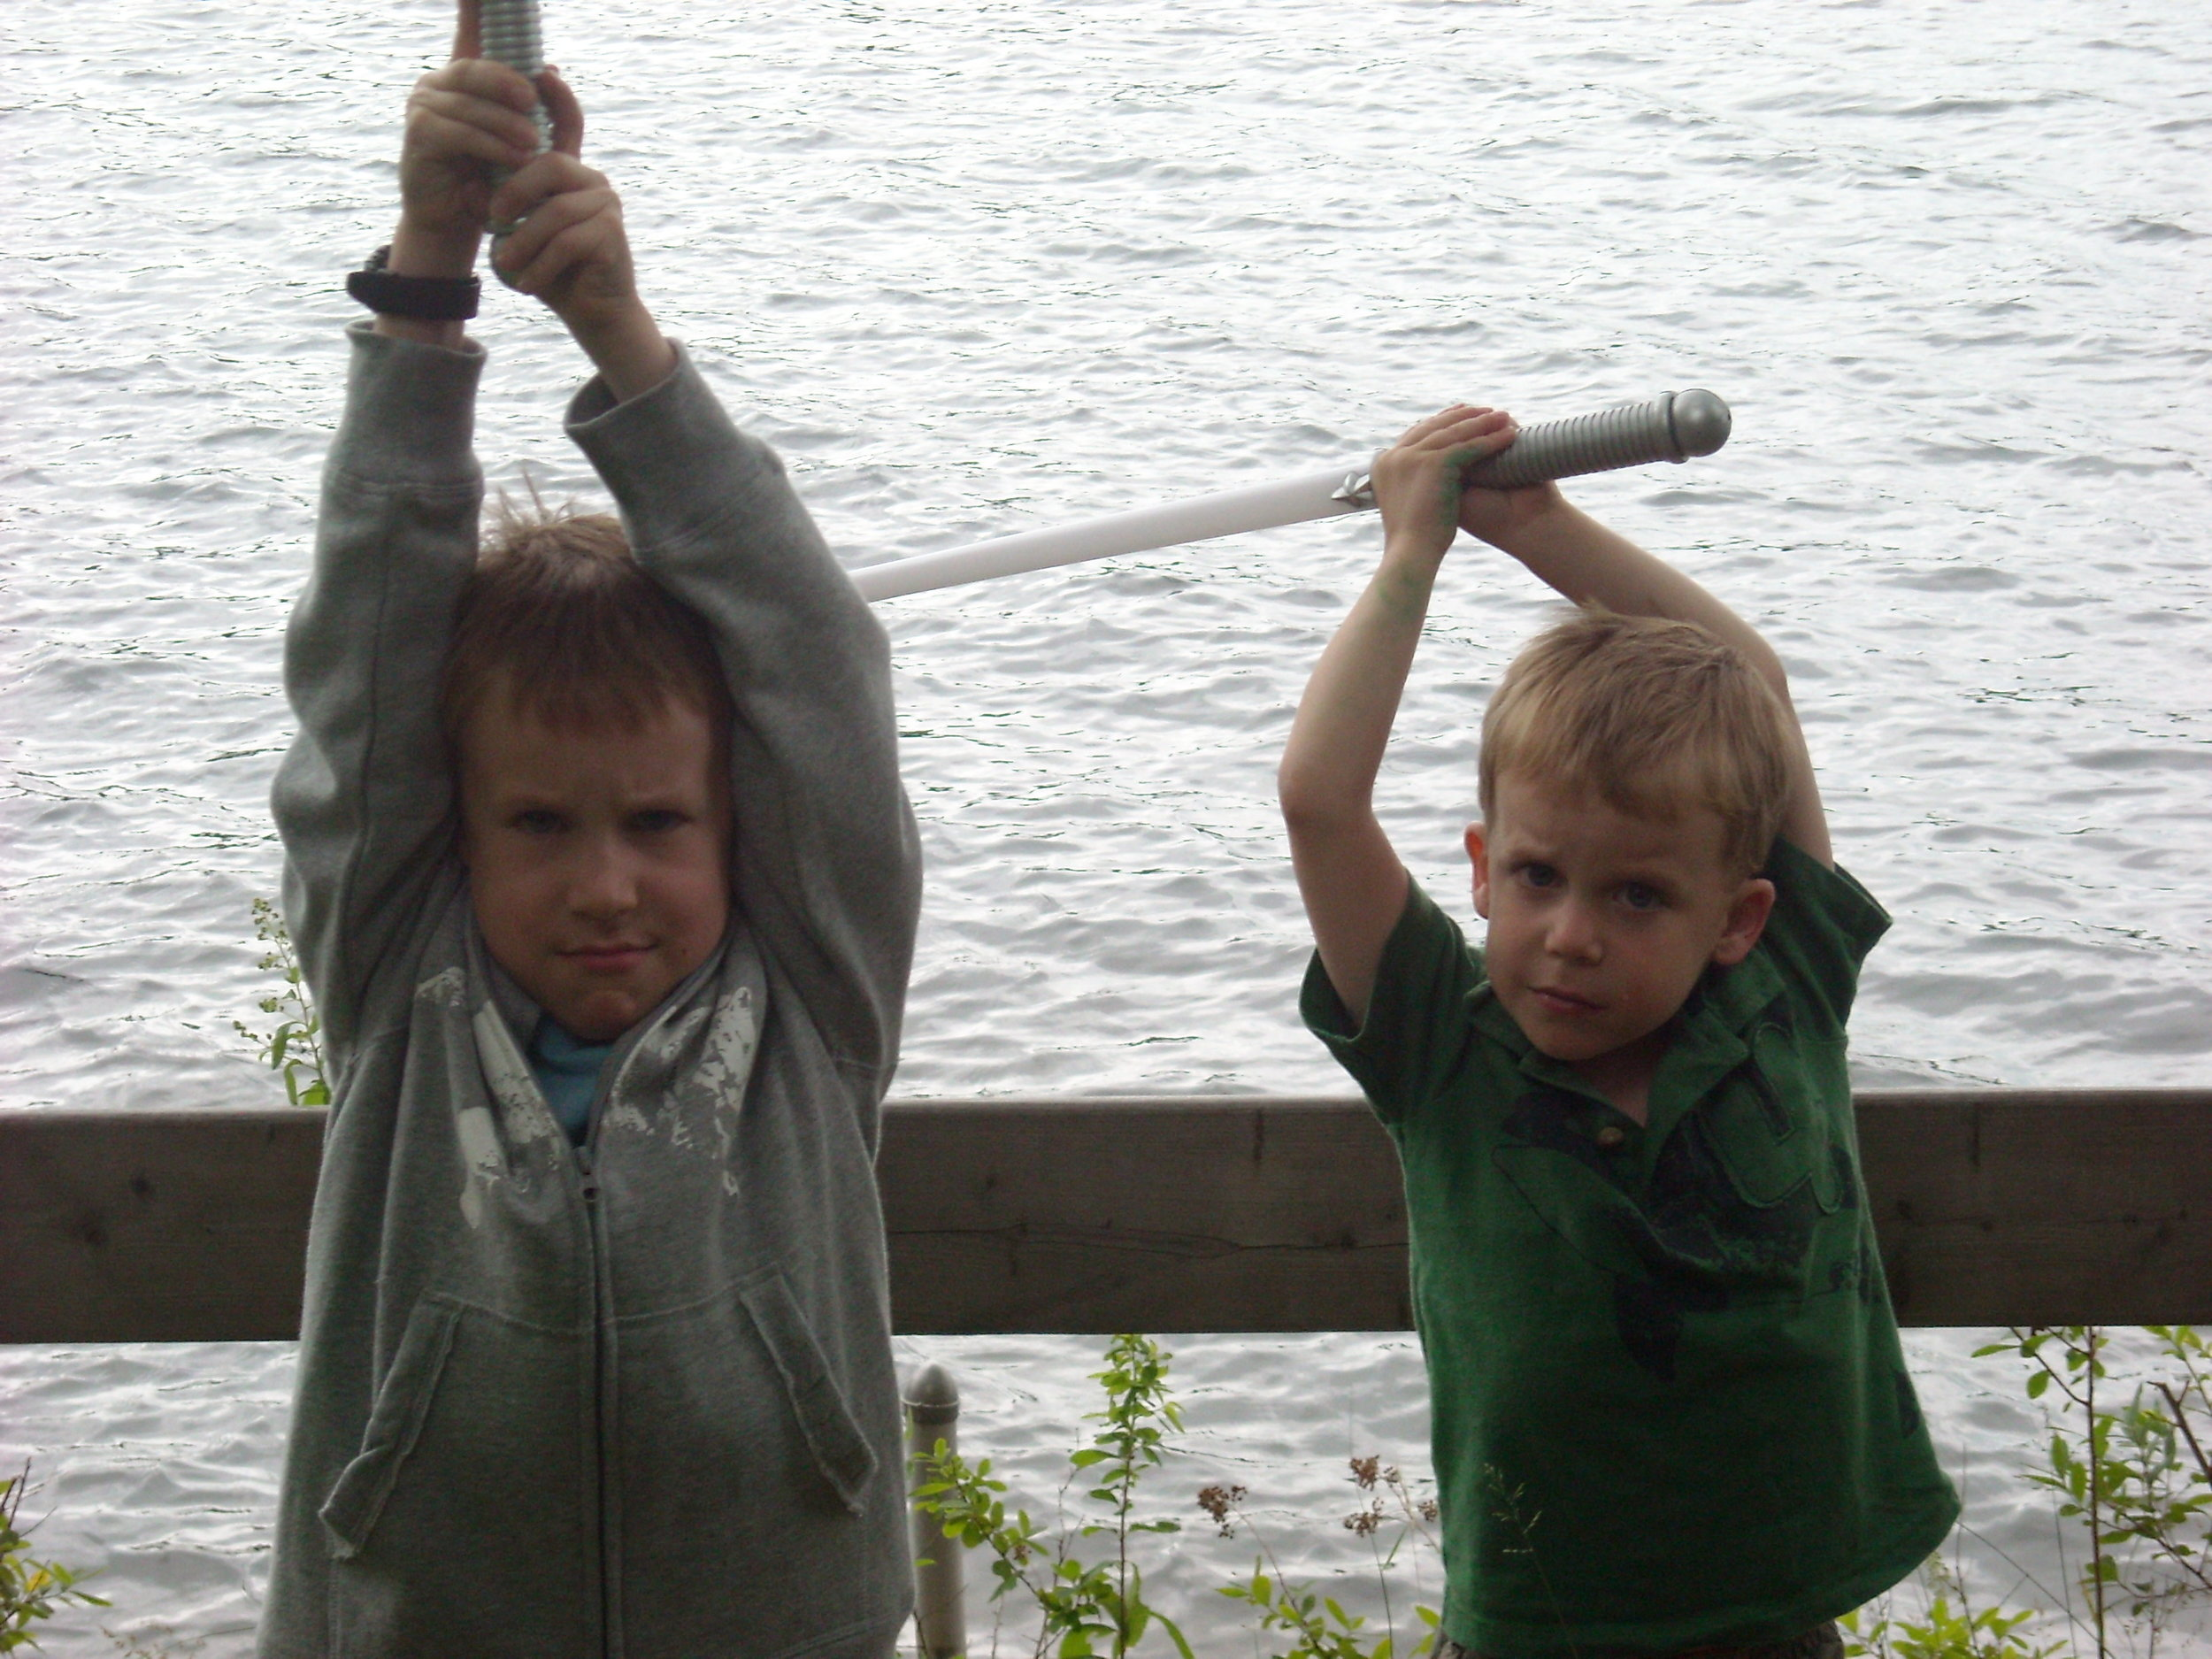 my nephews, Jack and Charlie learning at a young age